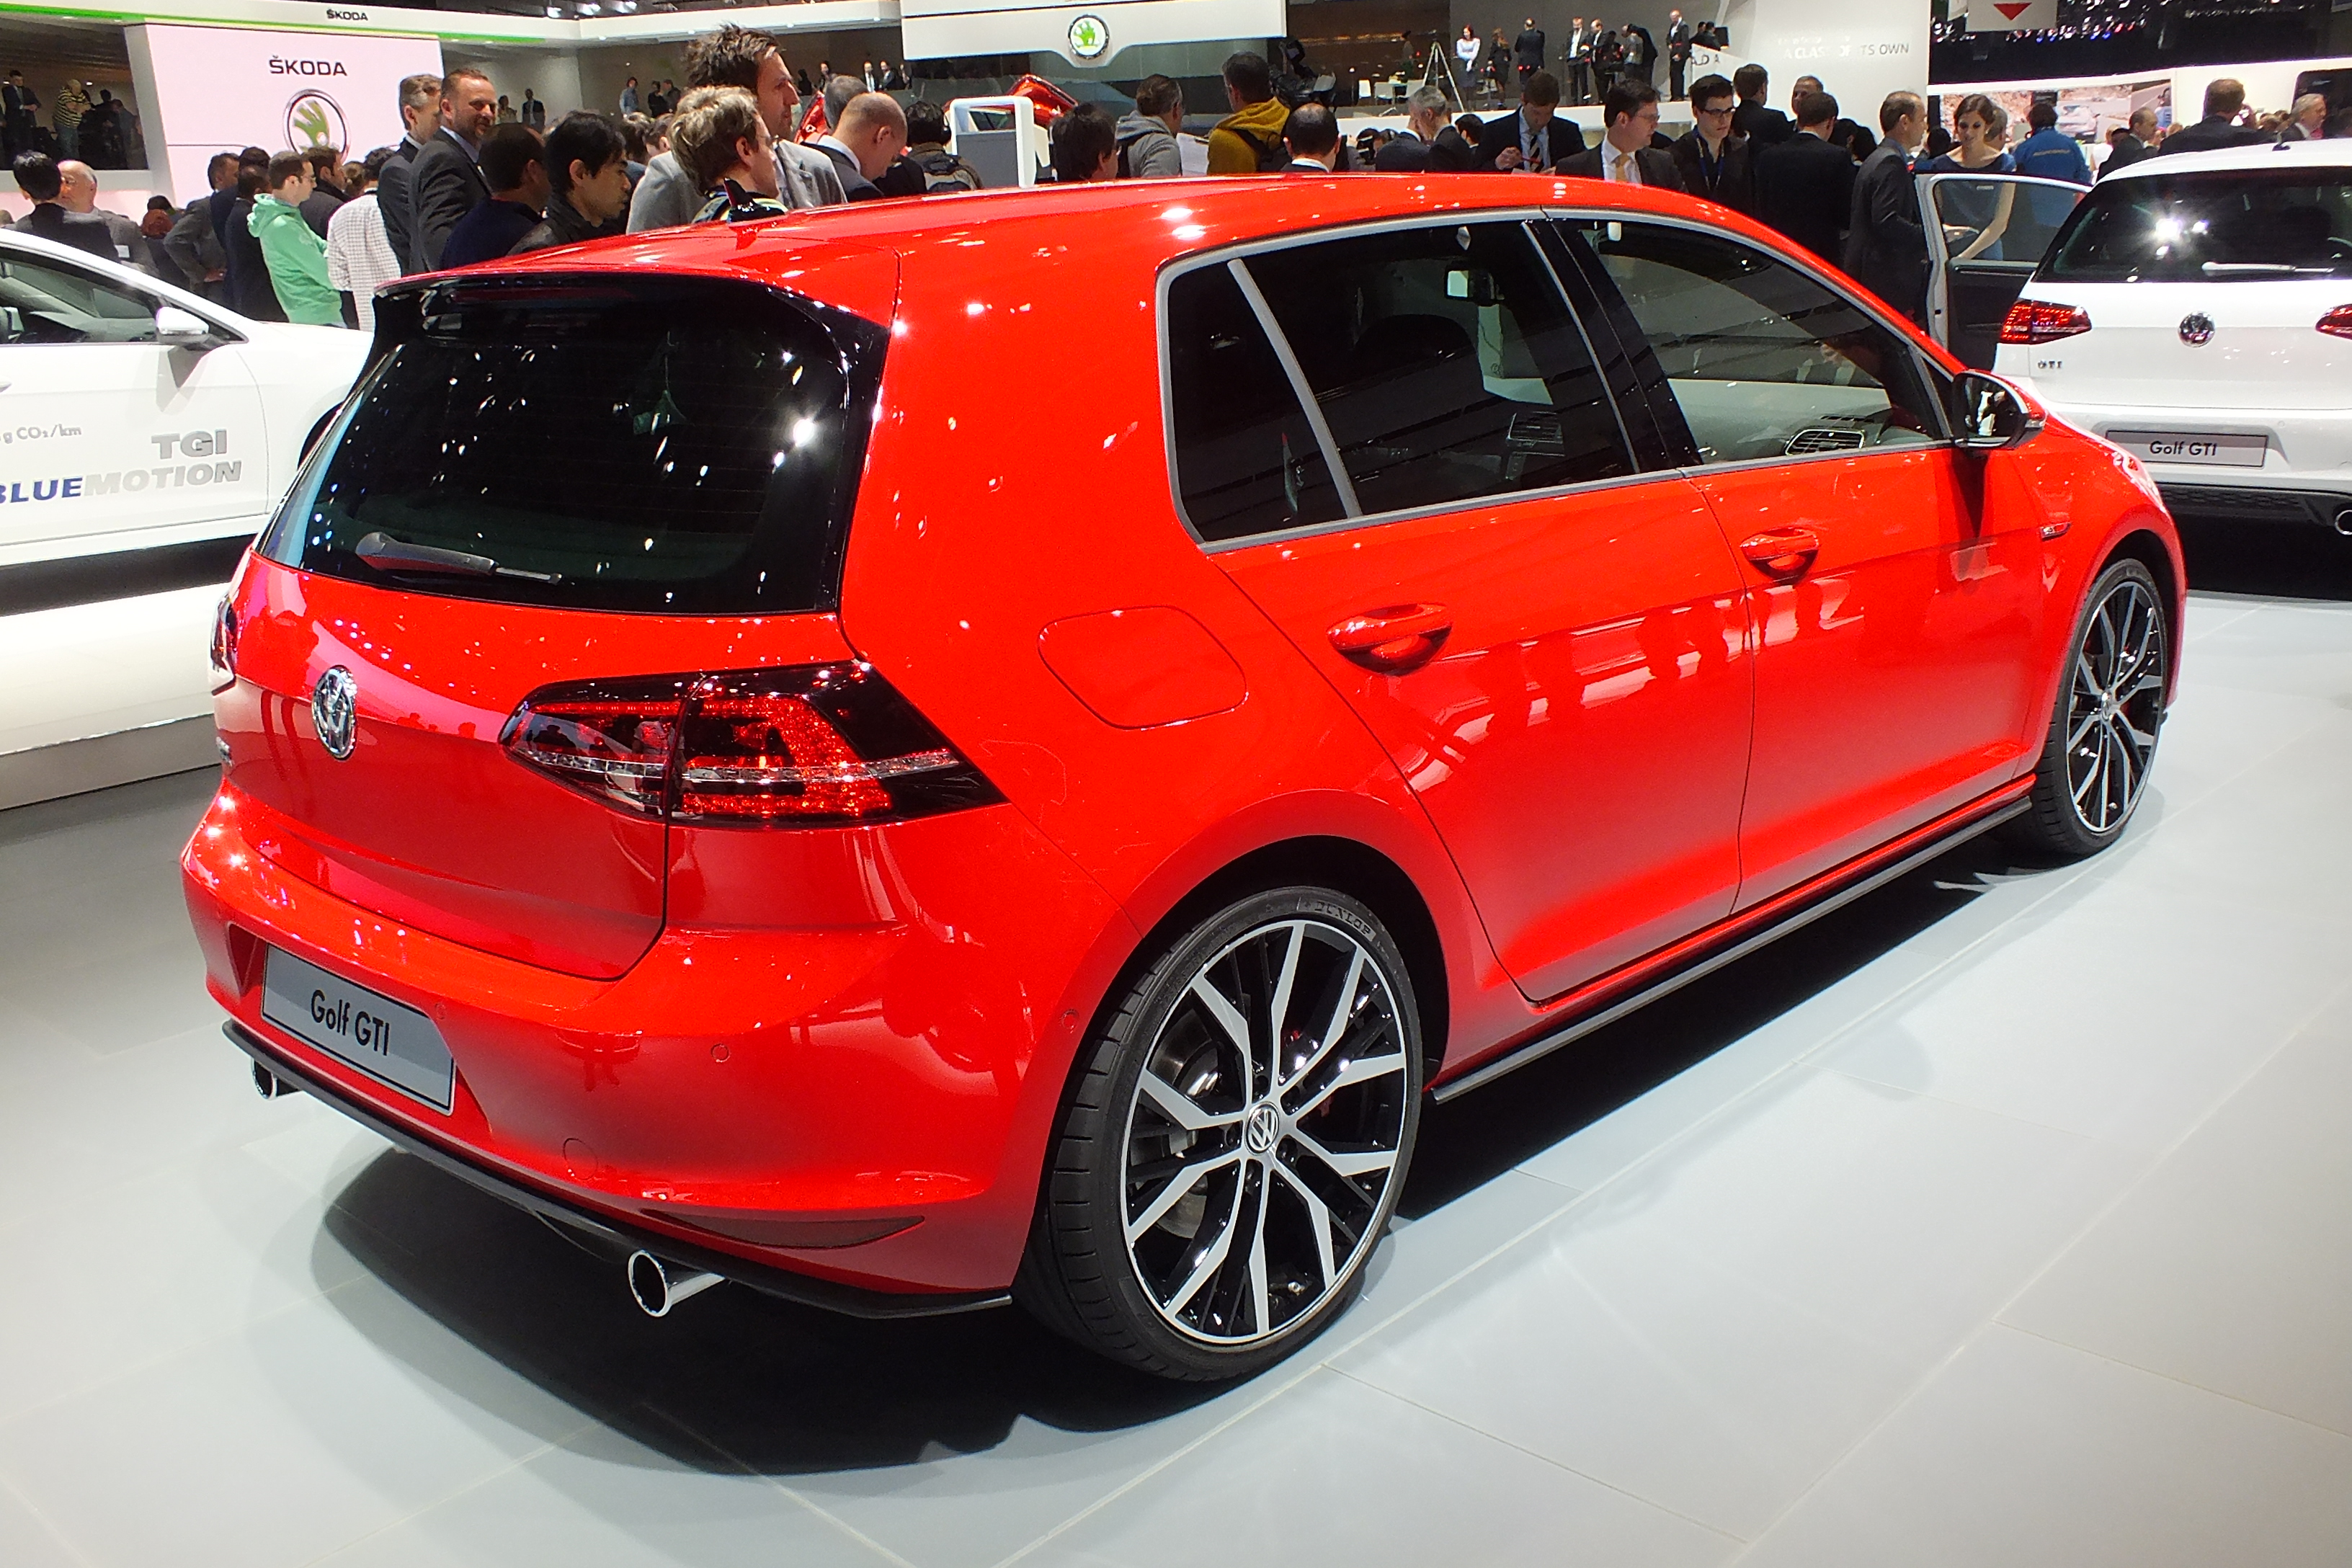 salon de gen ve 2013 golf gti 7 dark cars wallpapers. Black Bedroom Furniture Sets. Home Design Ideas